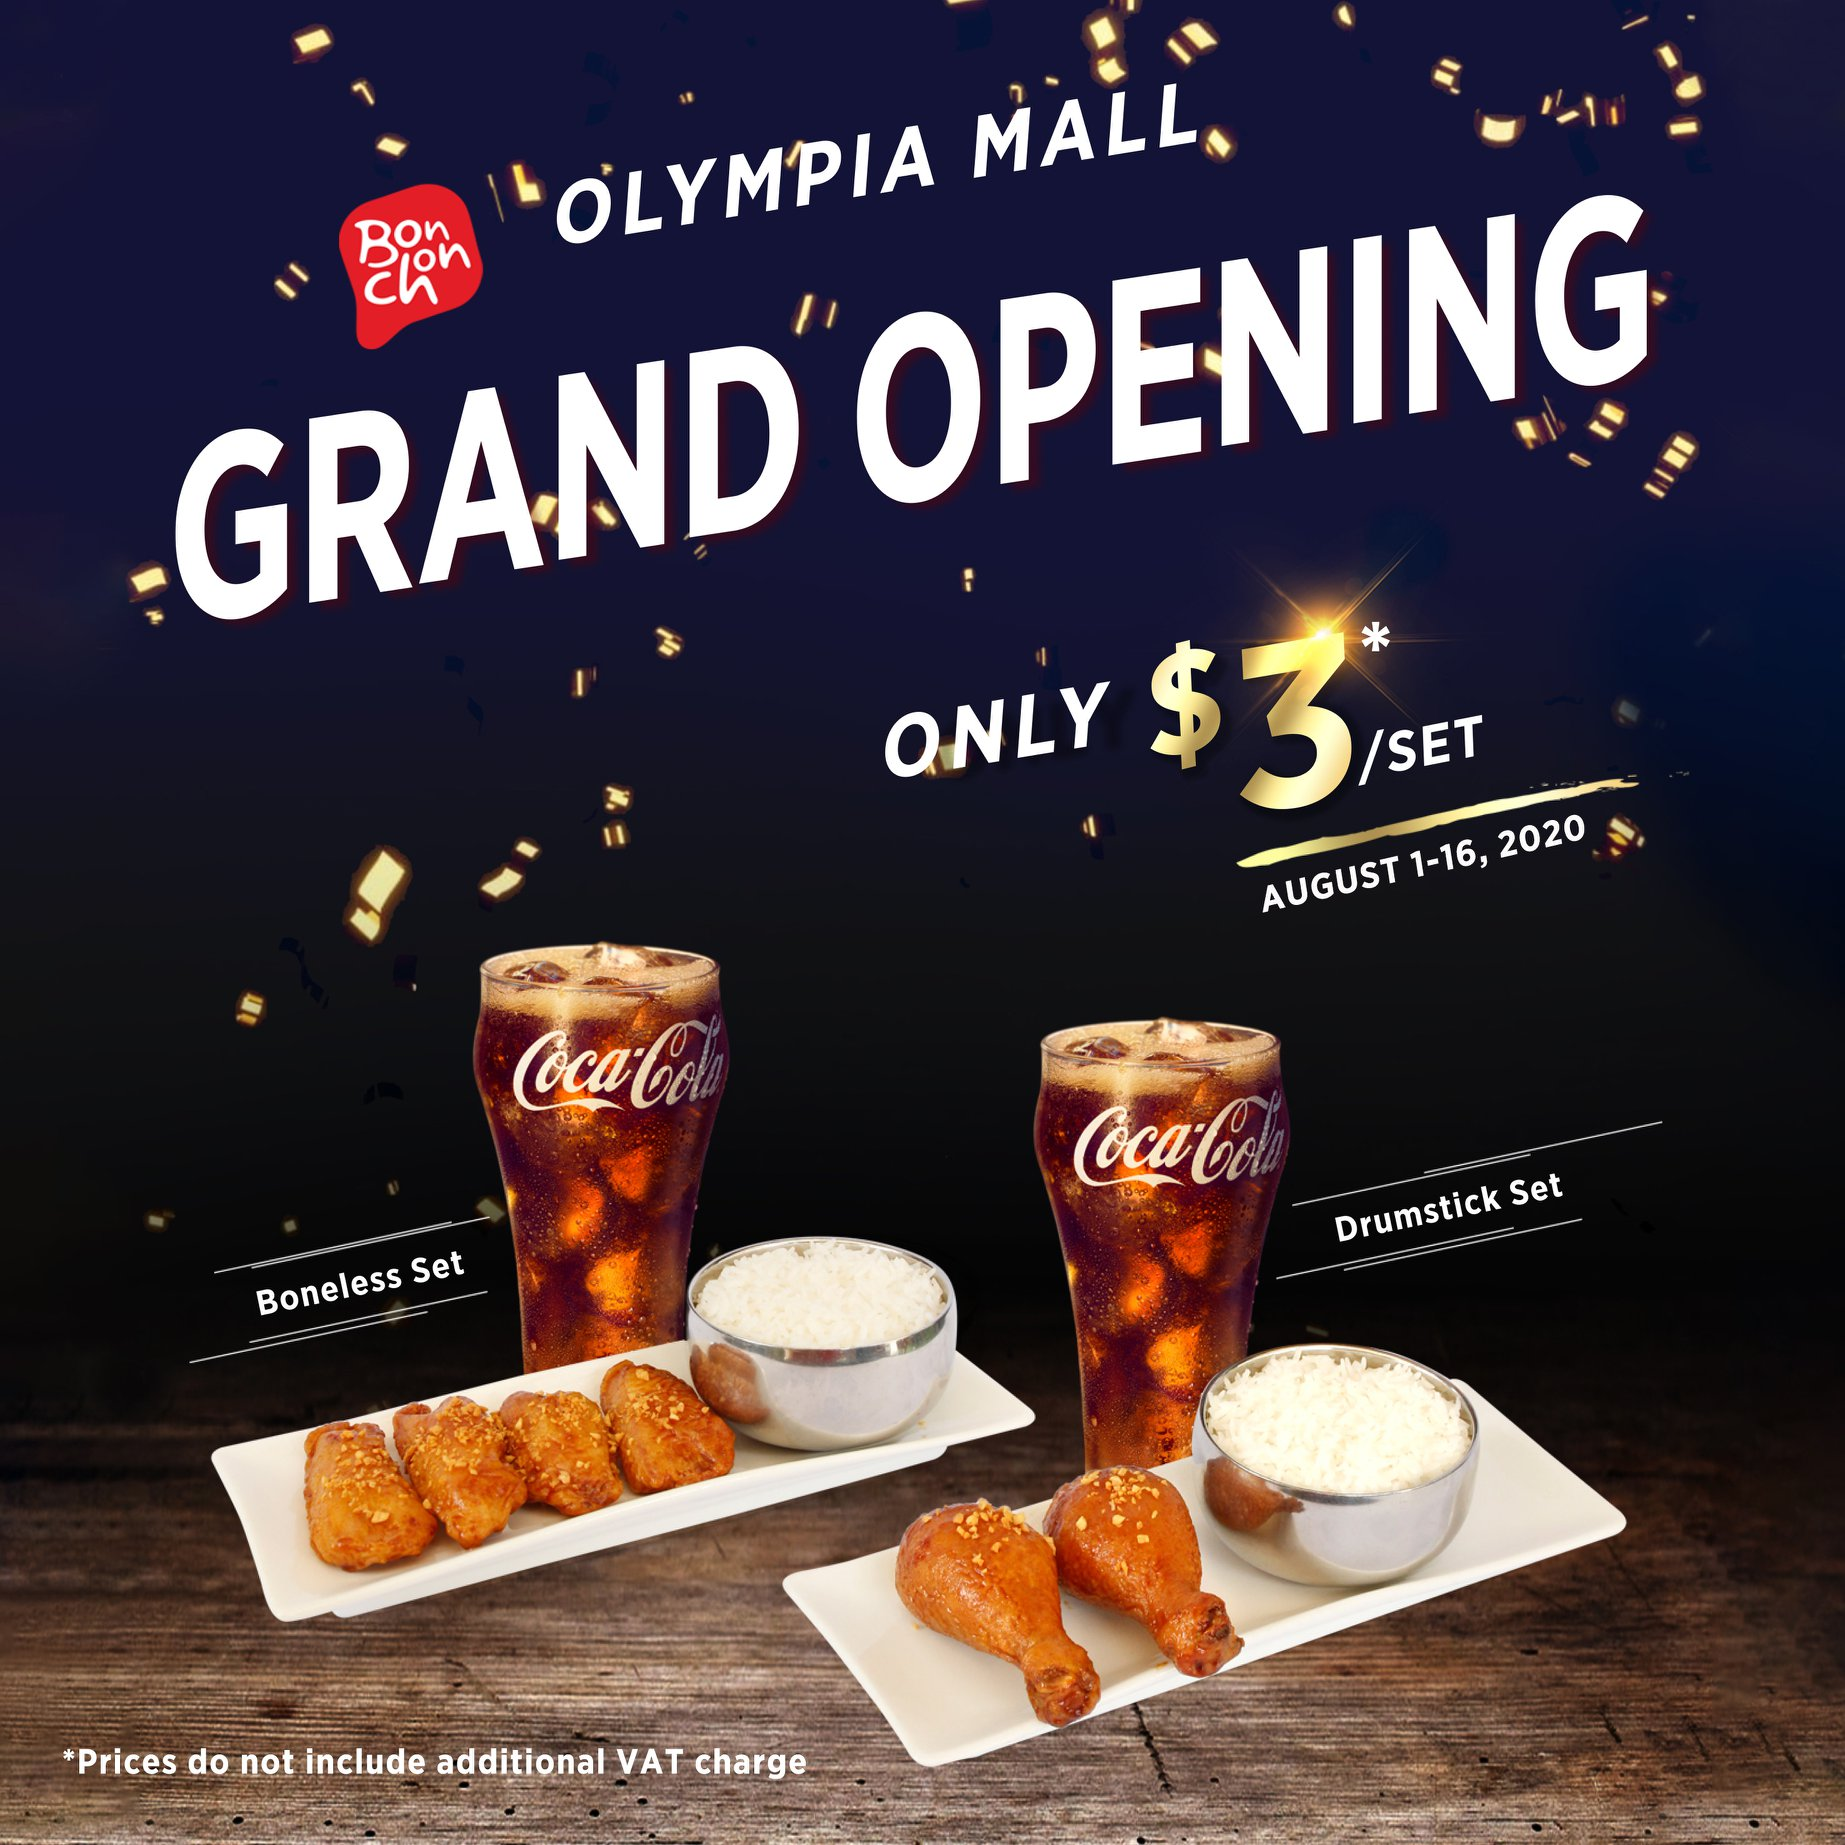 Olympia Mall Grand Opening Only $3/Set